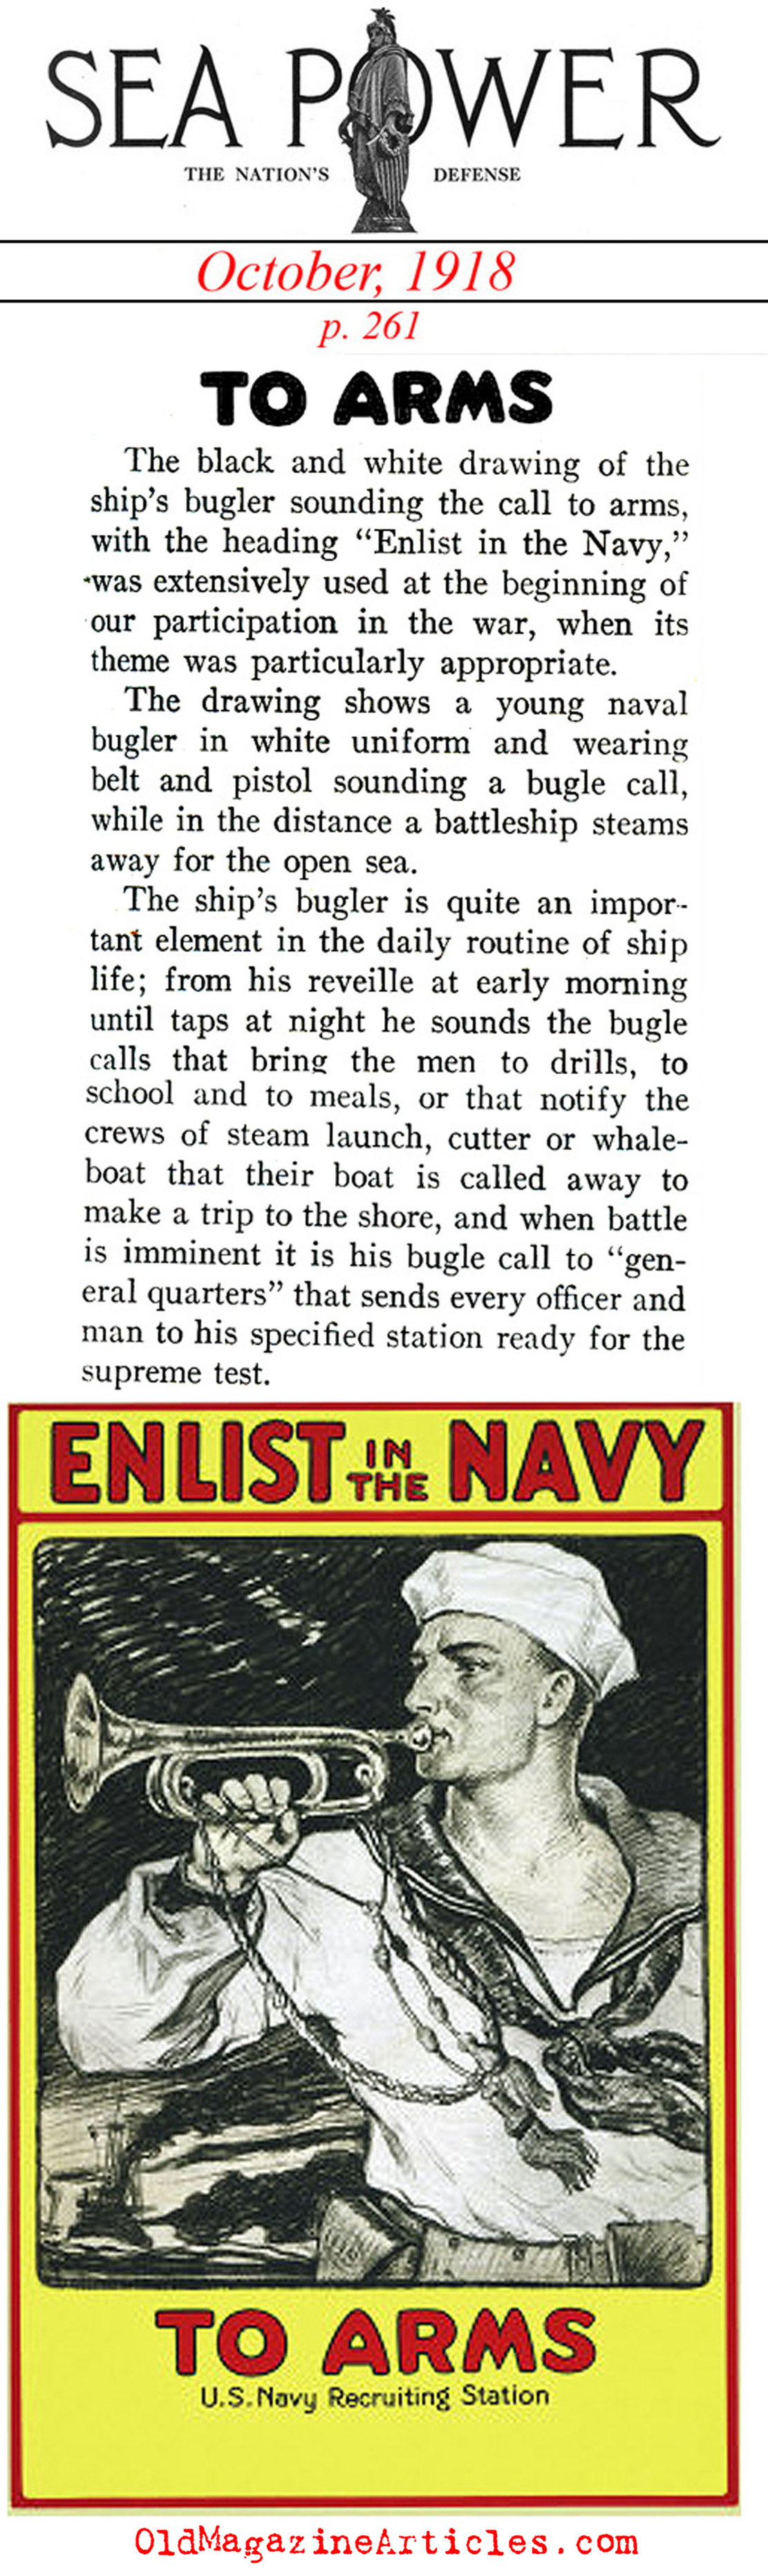 The Navy Call to Arms (Sea Power Magazine, 1918)